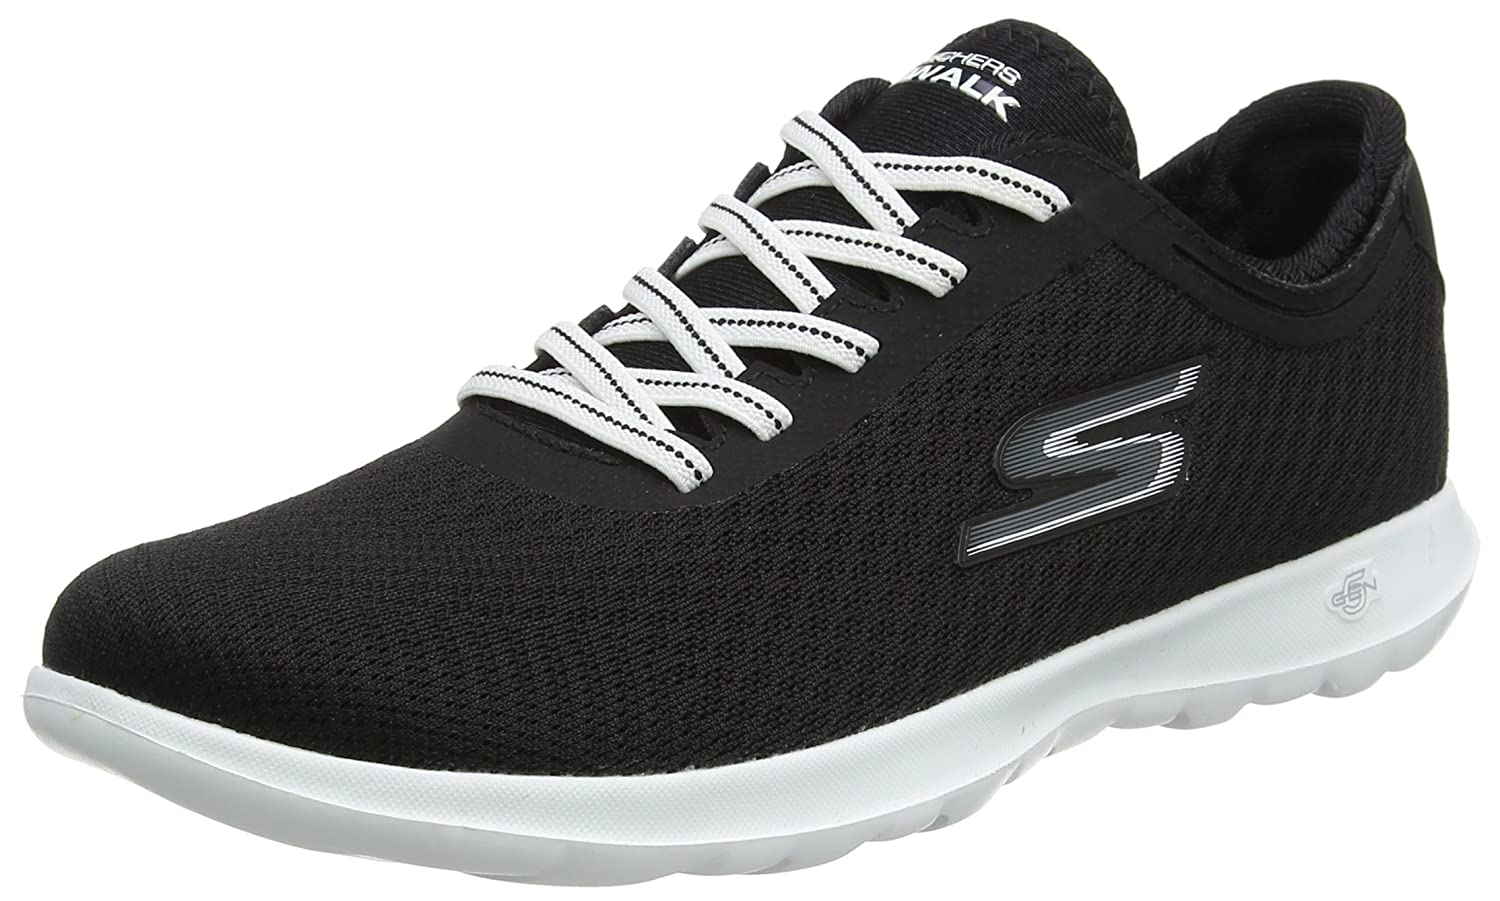 Skechers Go Walk Lite-Impulse, Zapatillas para Mujer 40 EU|Negro (Black/White)